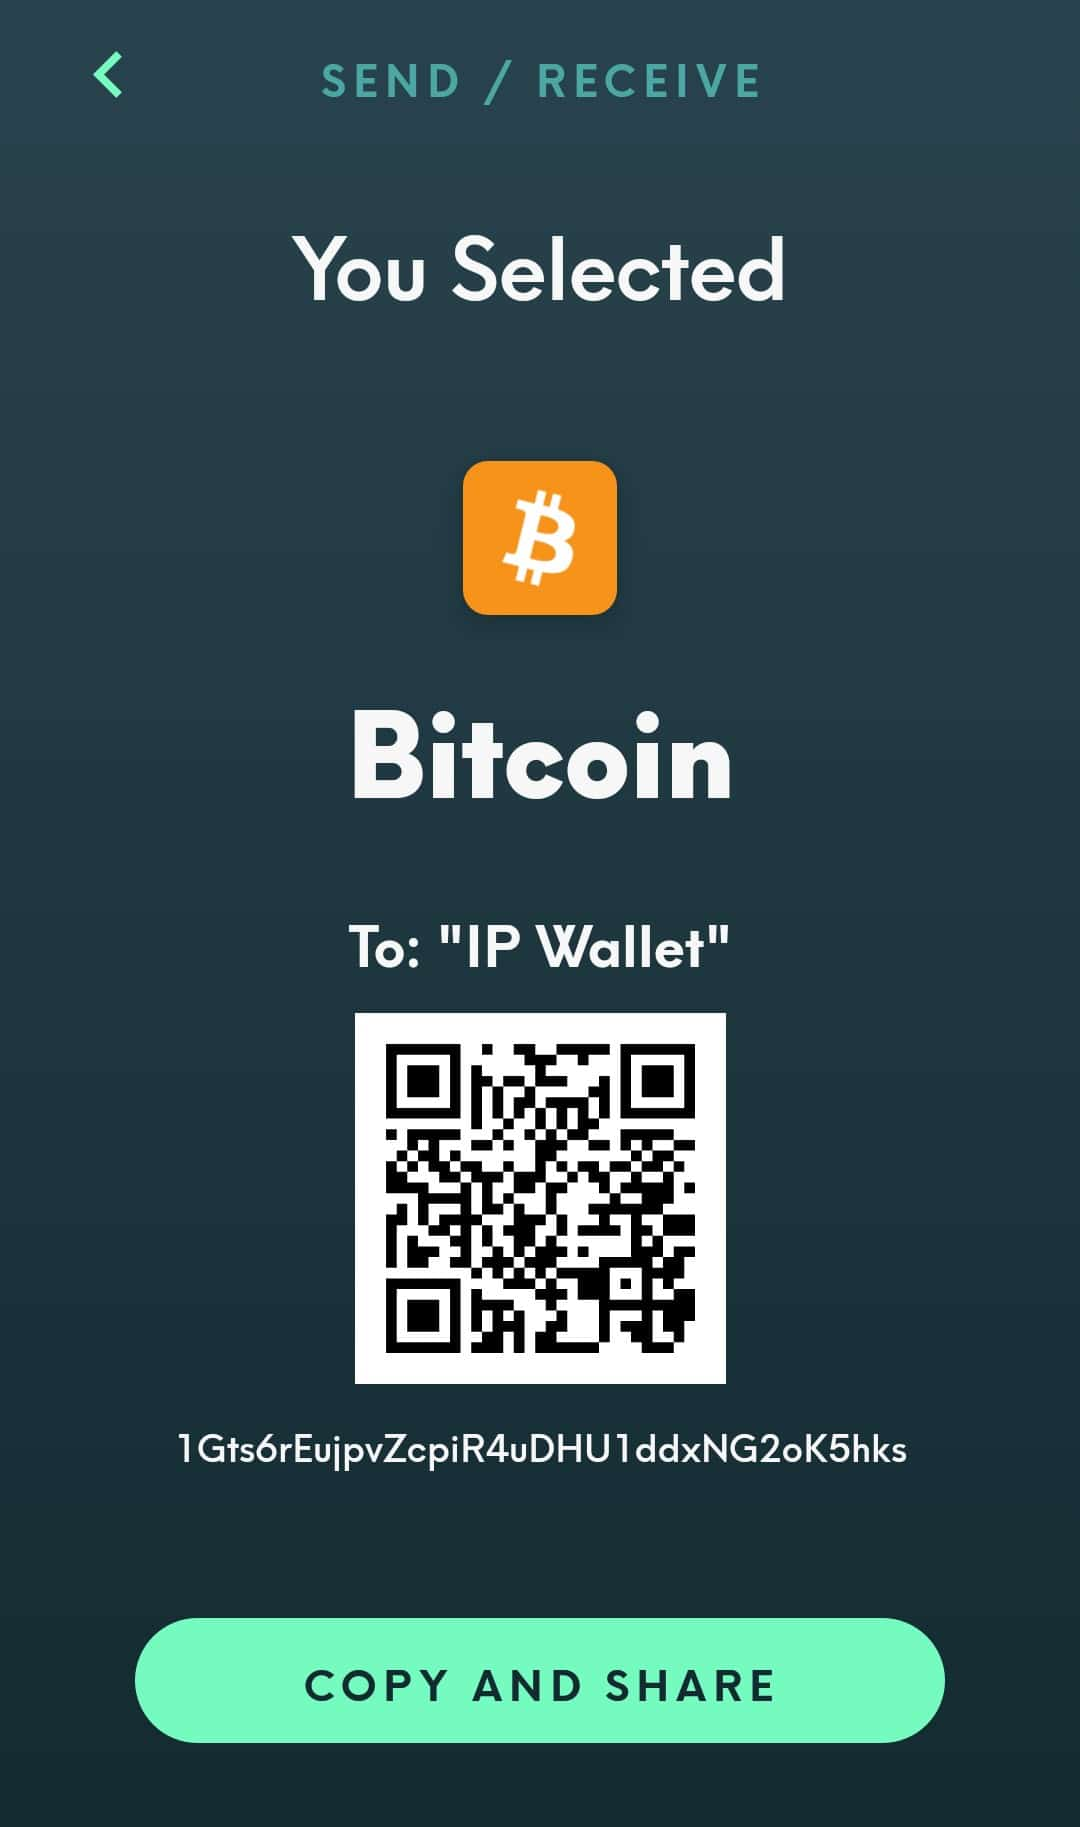 If you want to donate some Bitcoins, this is the address to use!